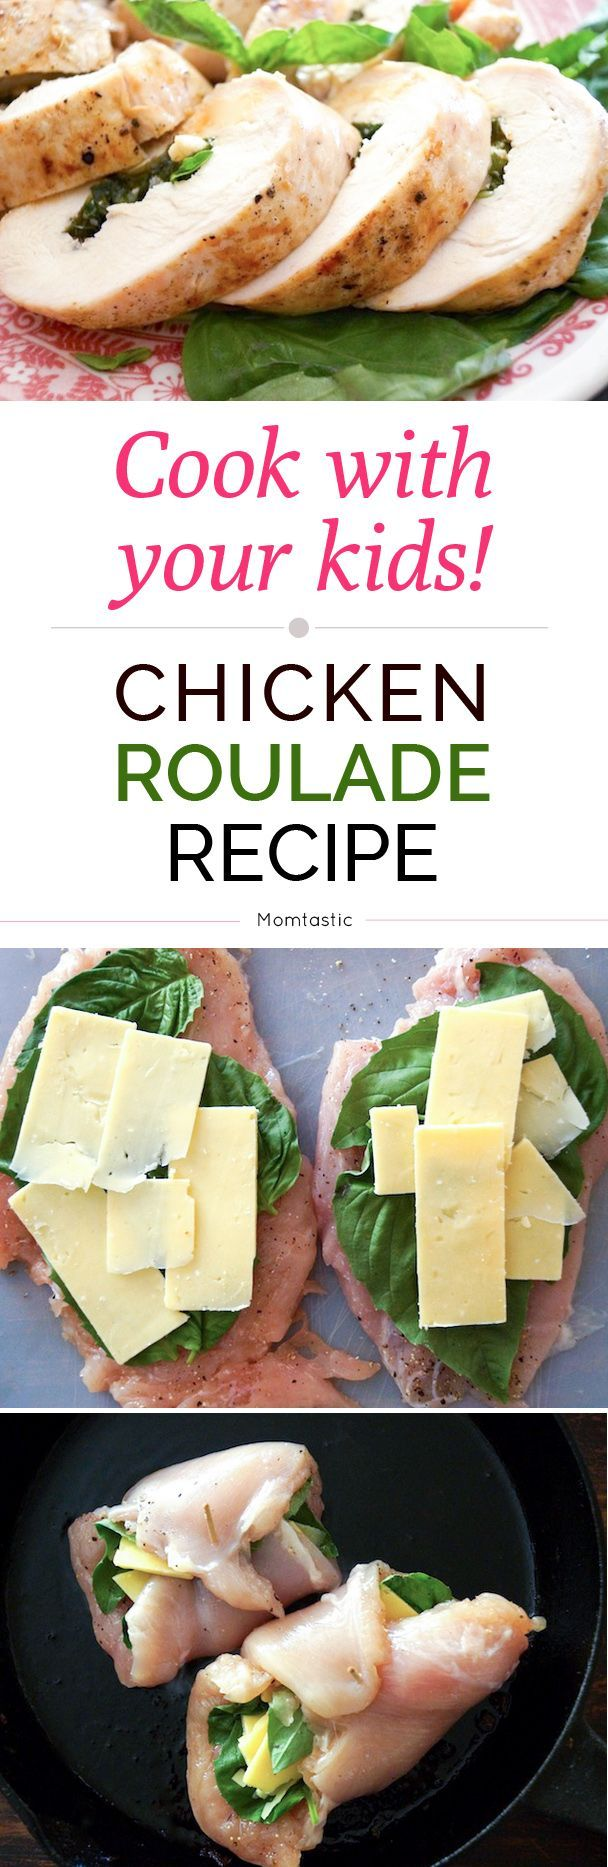 Chicken roulade recipe bbc